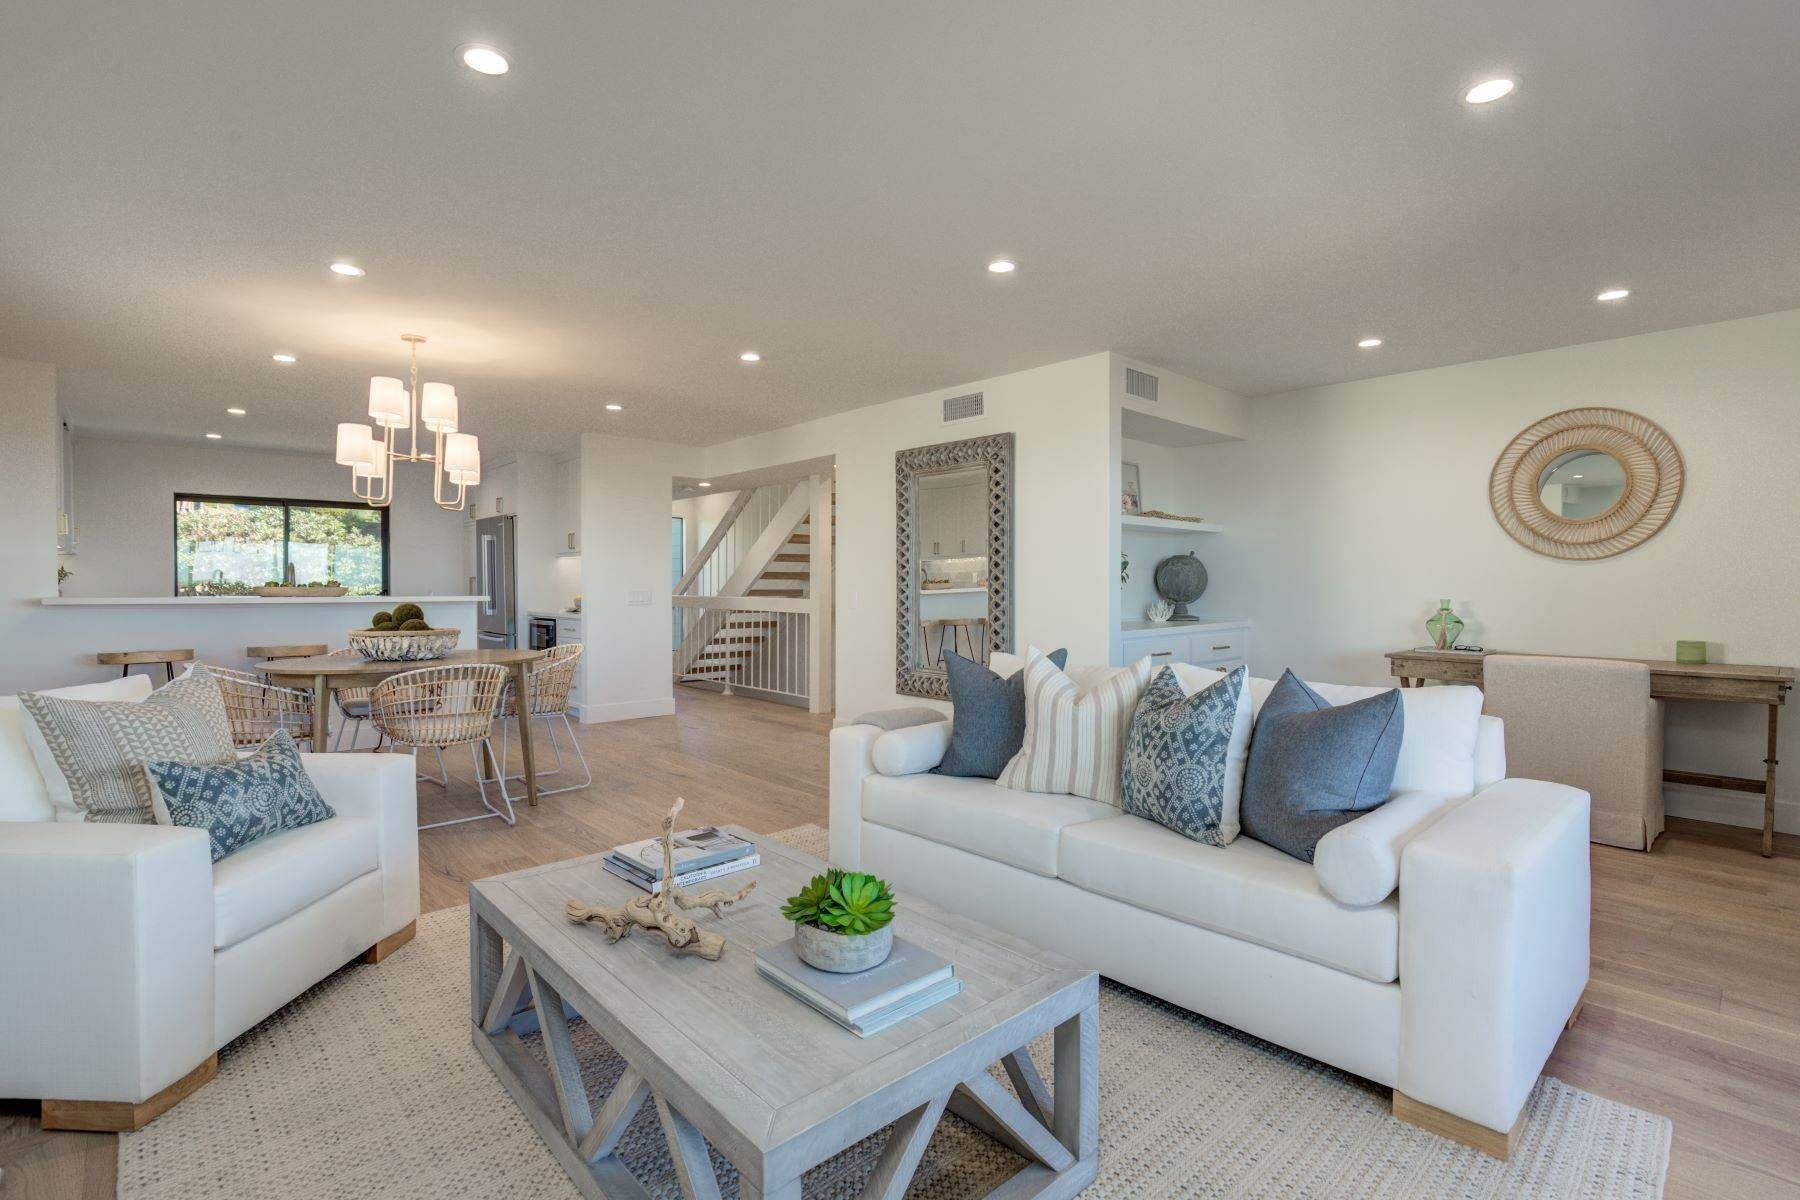 townhouses for Sale at 213 Calle Mayor, Redondo Beach, CA 90277 213 Calle Mayor Redondo Beach, California 90277 United States